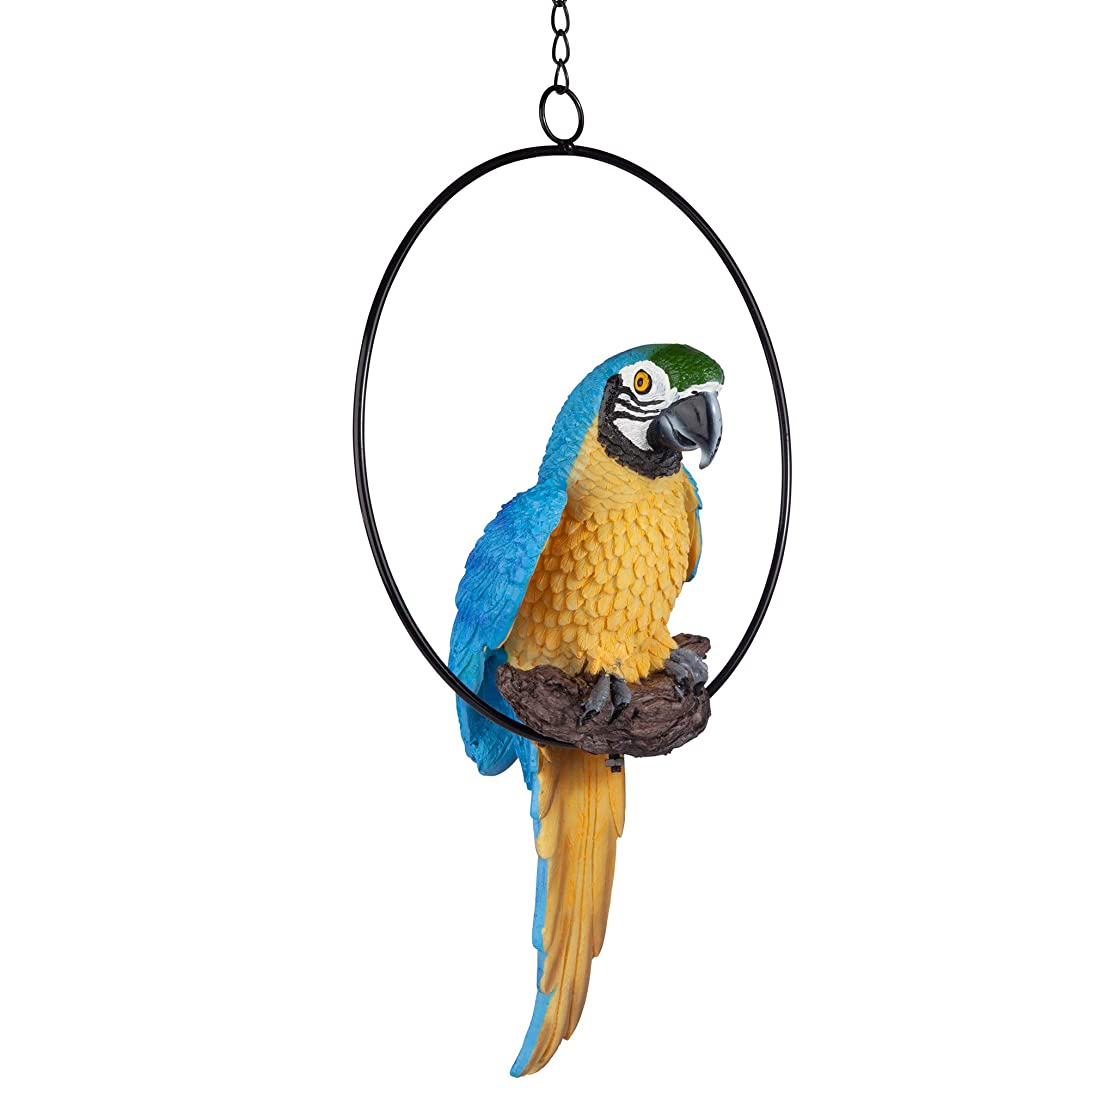 Design Toscano Polly in Paradise Parrot Hanging Bird Ring Perch Statue, Medium 14 Inch, Polyresin, Full Color nrwblnpa6